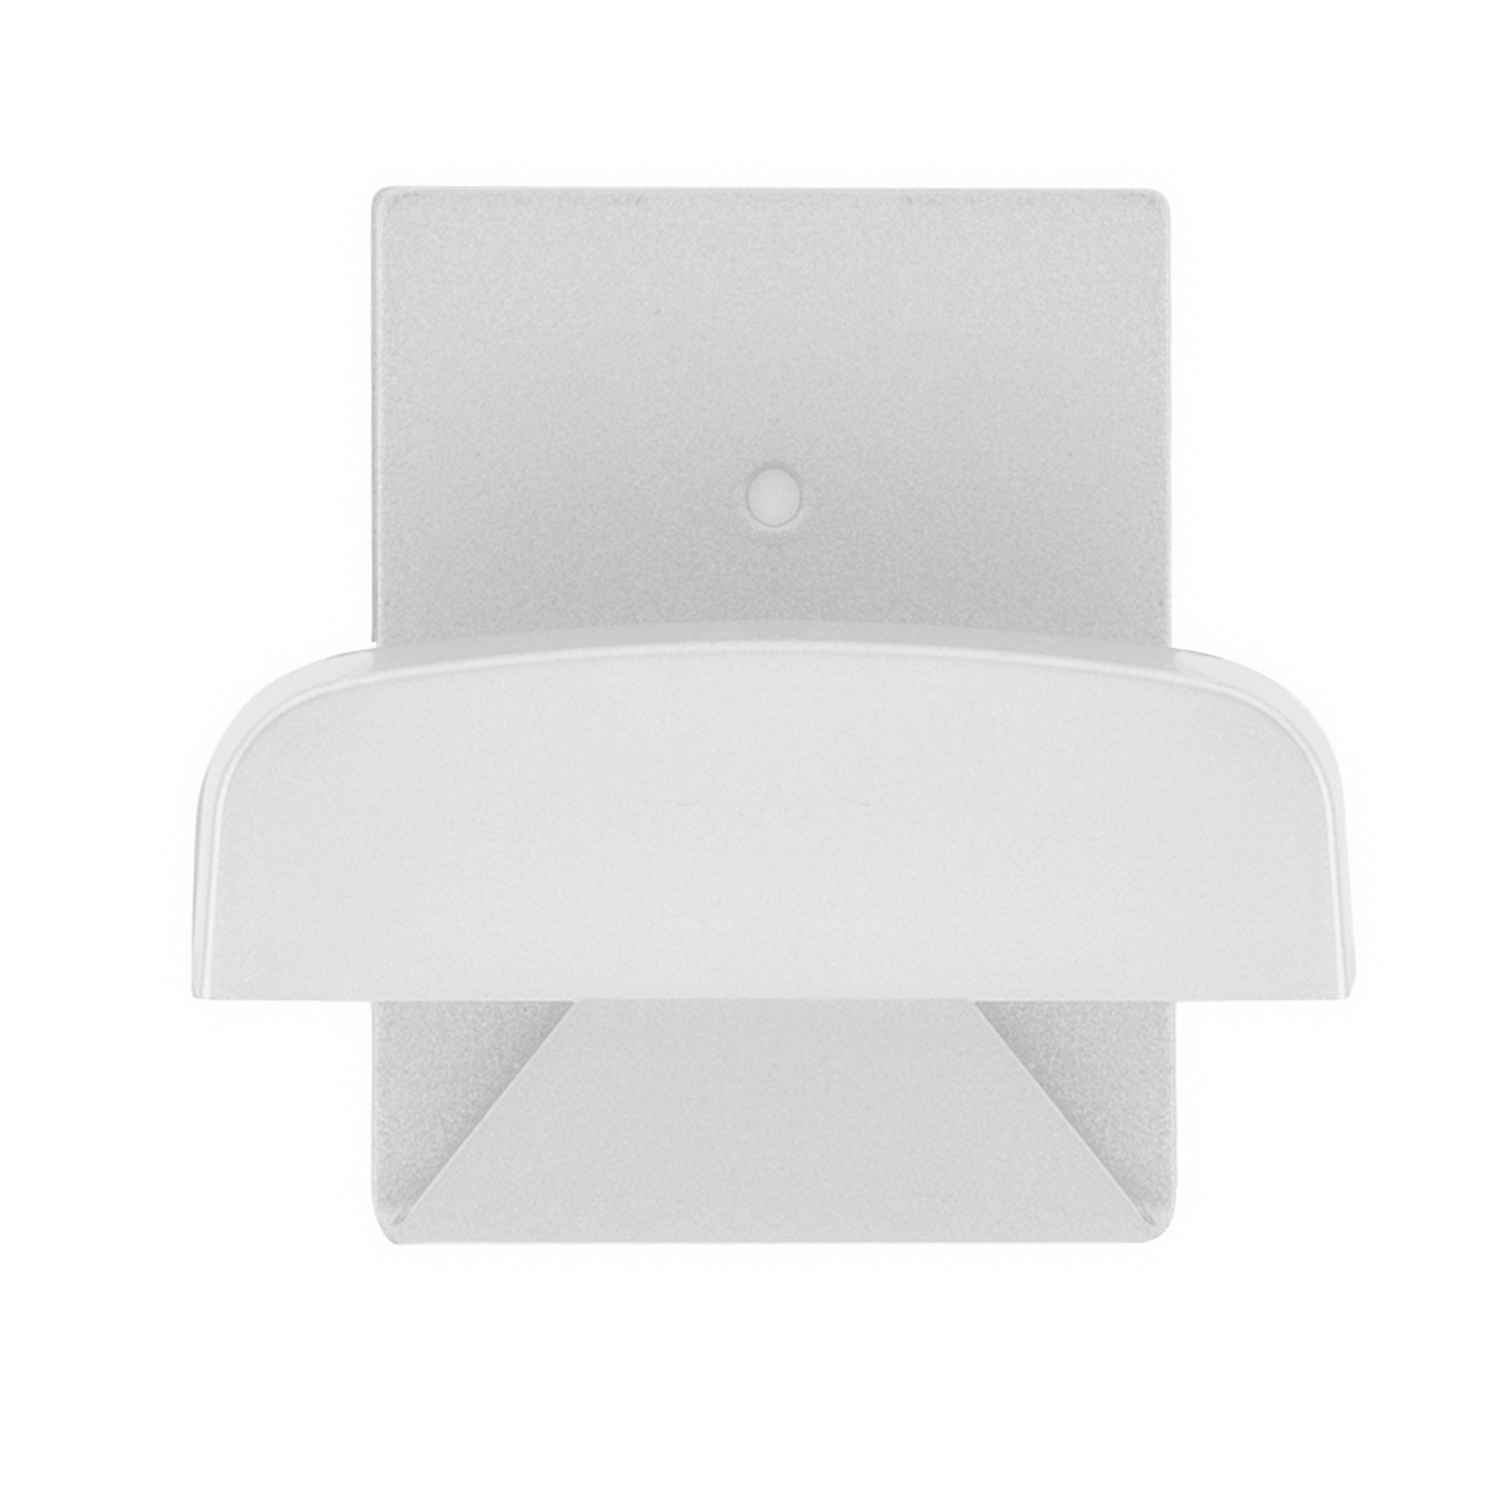 Colgador Percha Adhesivo Acero Inoxidable Color Blanco